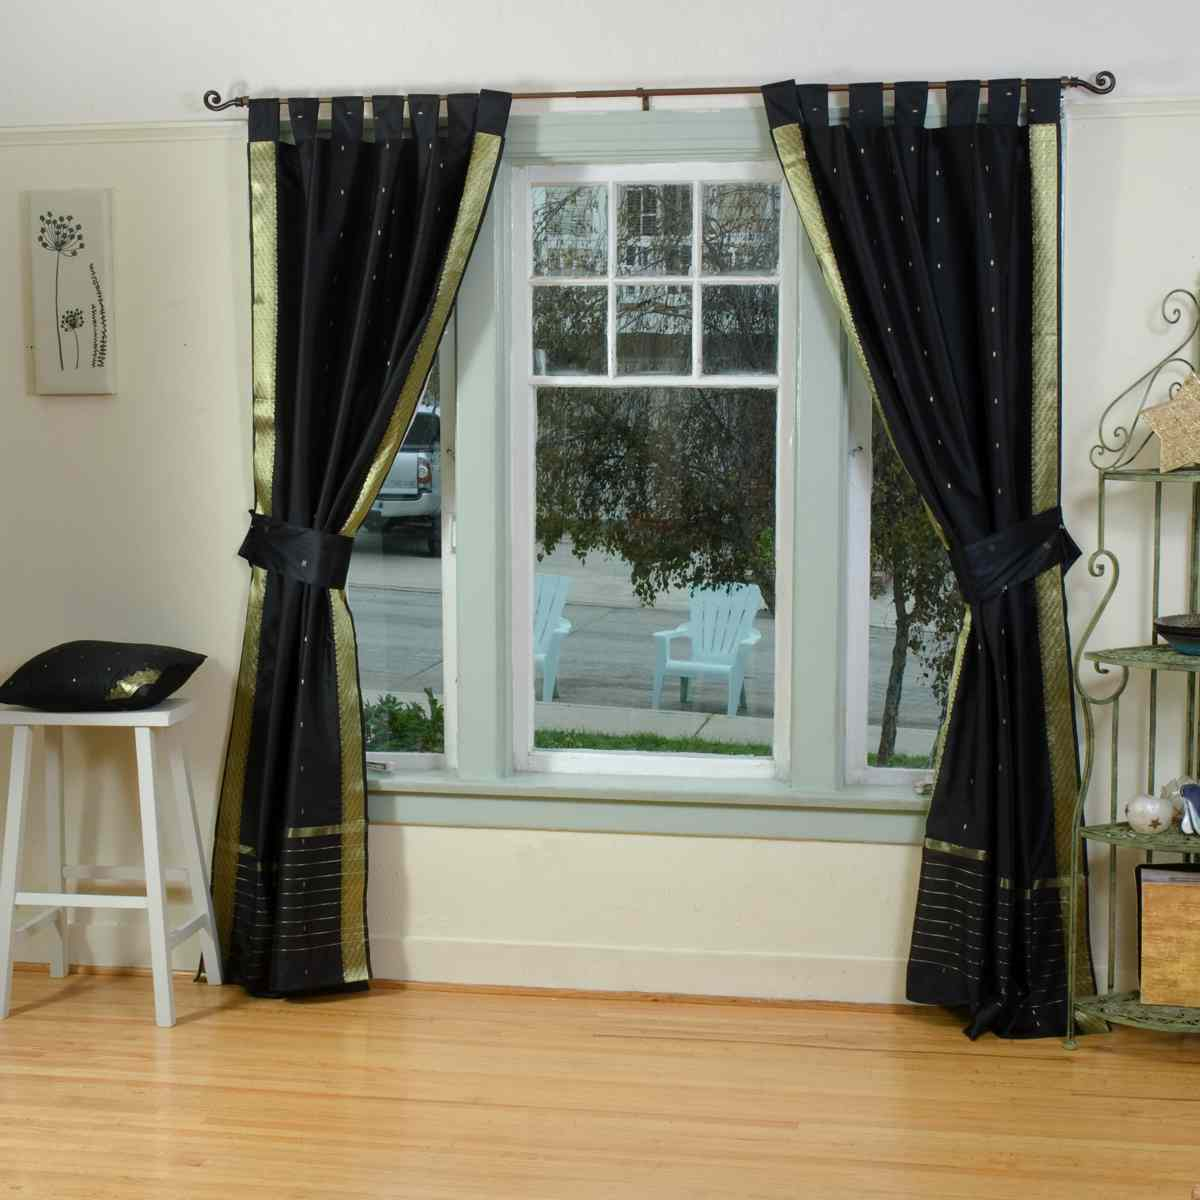 Indian Selections Indo Black Tab Top Sari Sheer Curtain (43 in. x 84 in.) with matching tieback at Sears.com